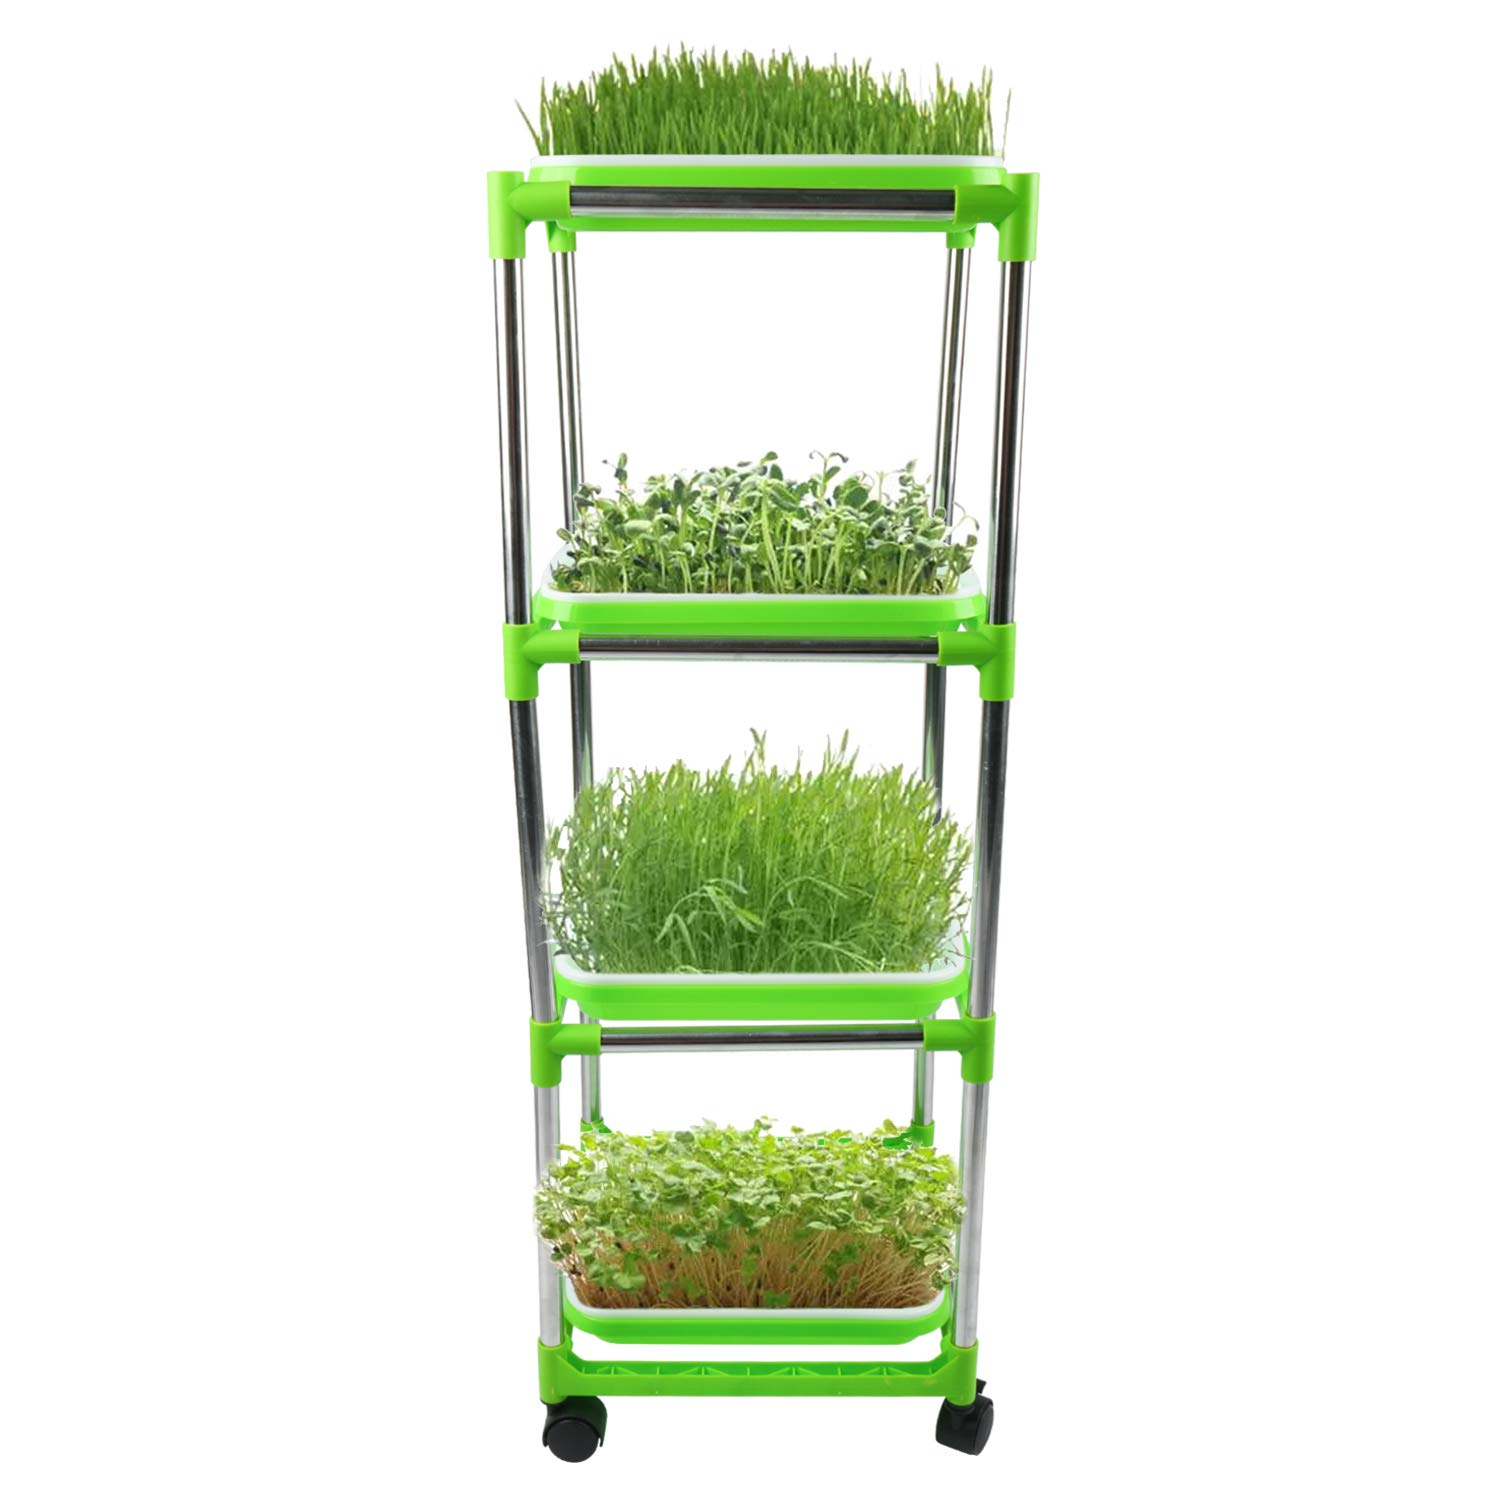 Homend Seed Sprouter Trays with 4 Layers Stainless Steel Shelf Soil-Free Healthy Wheatgrass Seeds Grower & Storage Trays for Garden Home (4 Seed Sprouter Trays with 4 Layers Shelf) by Homend